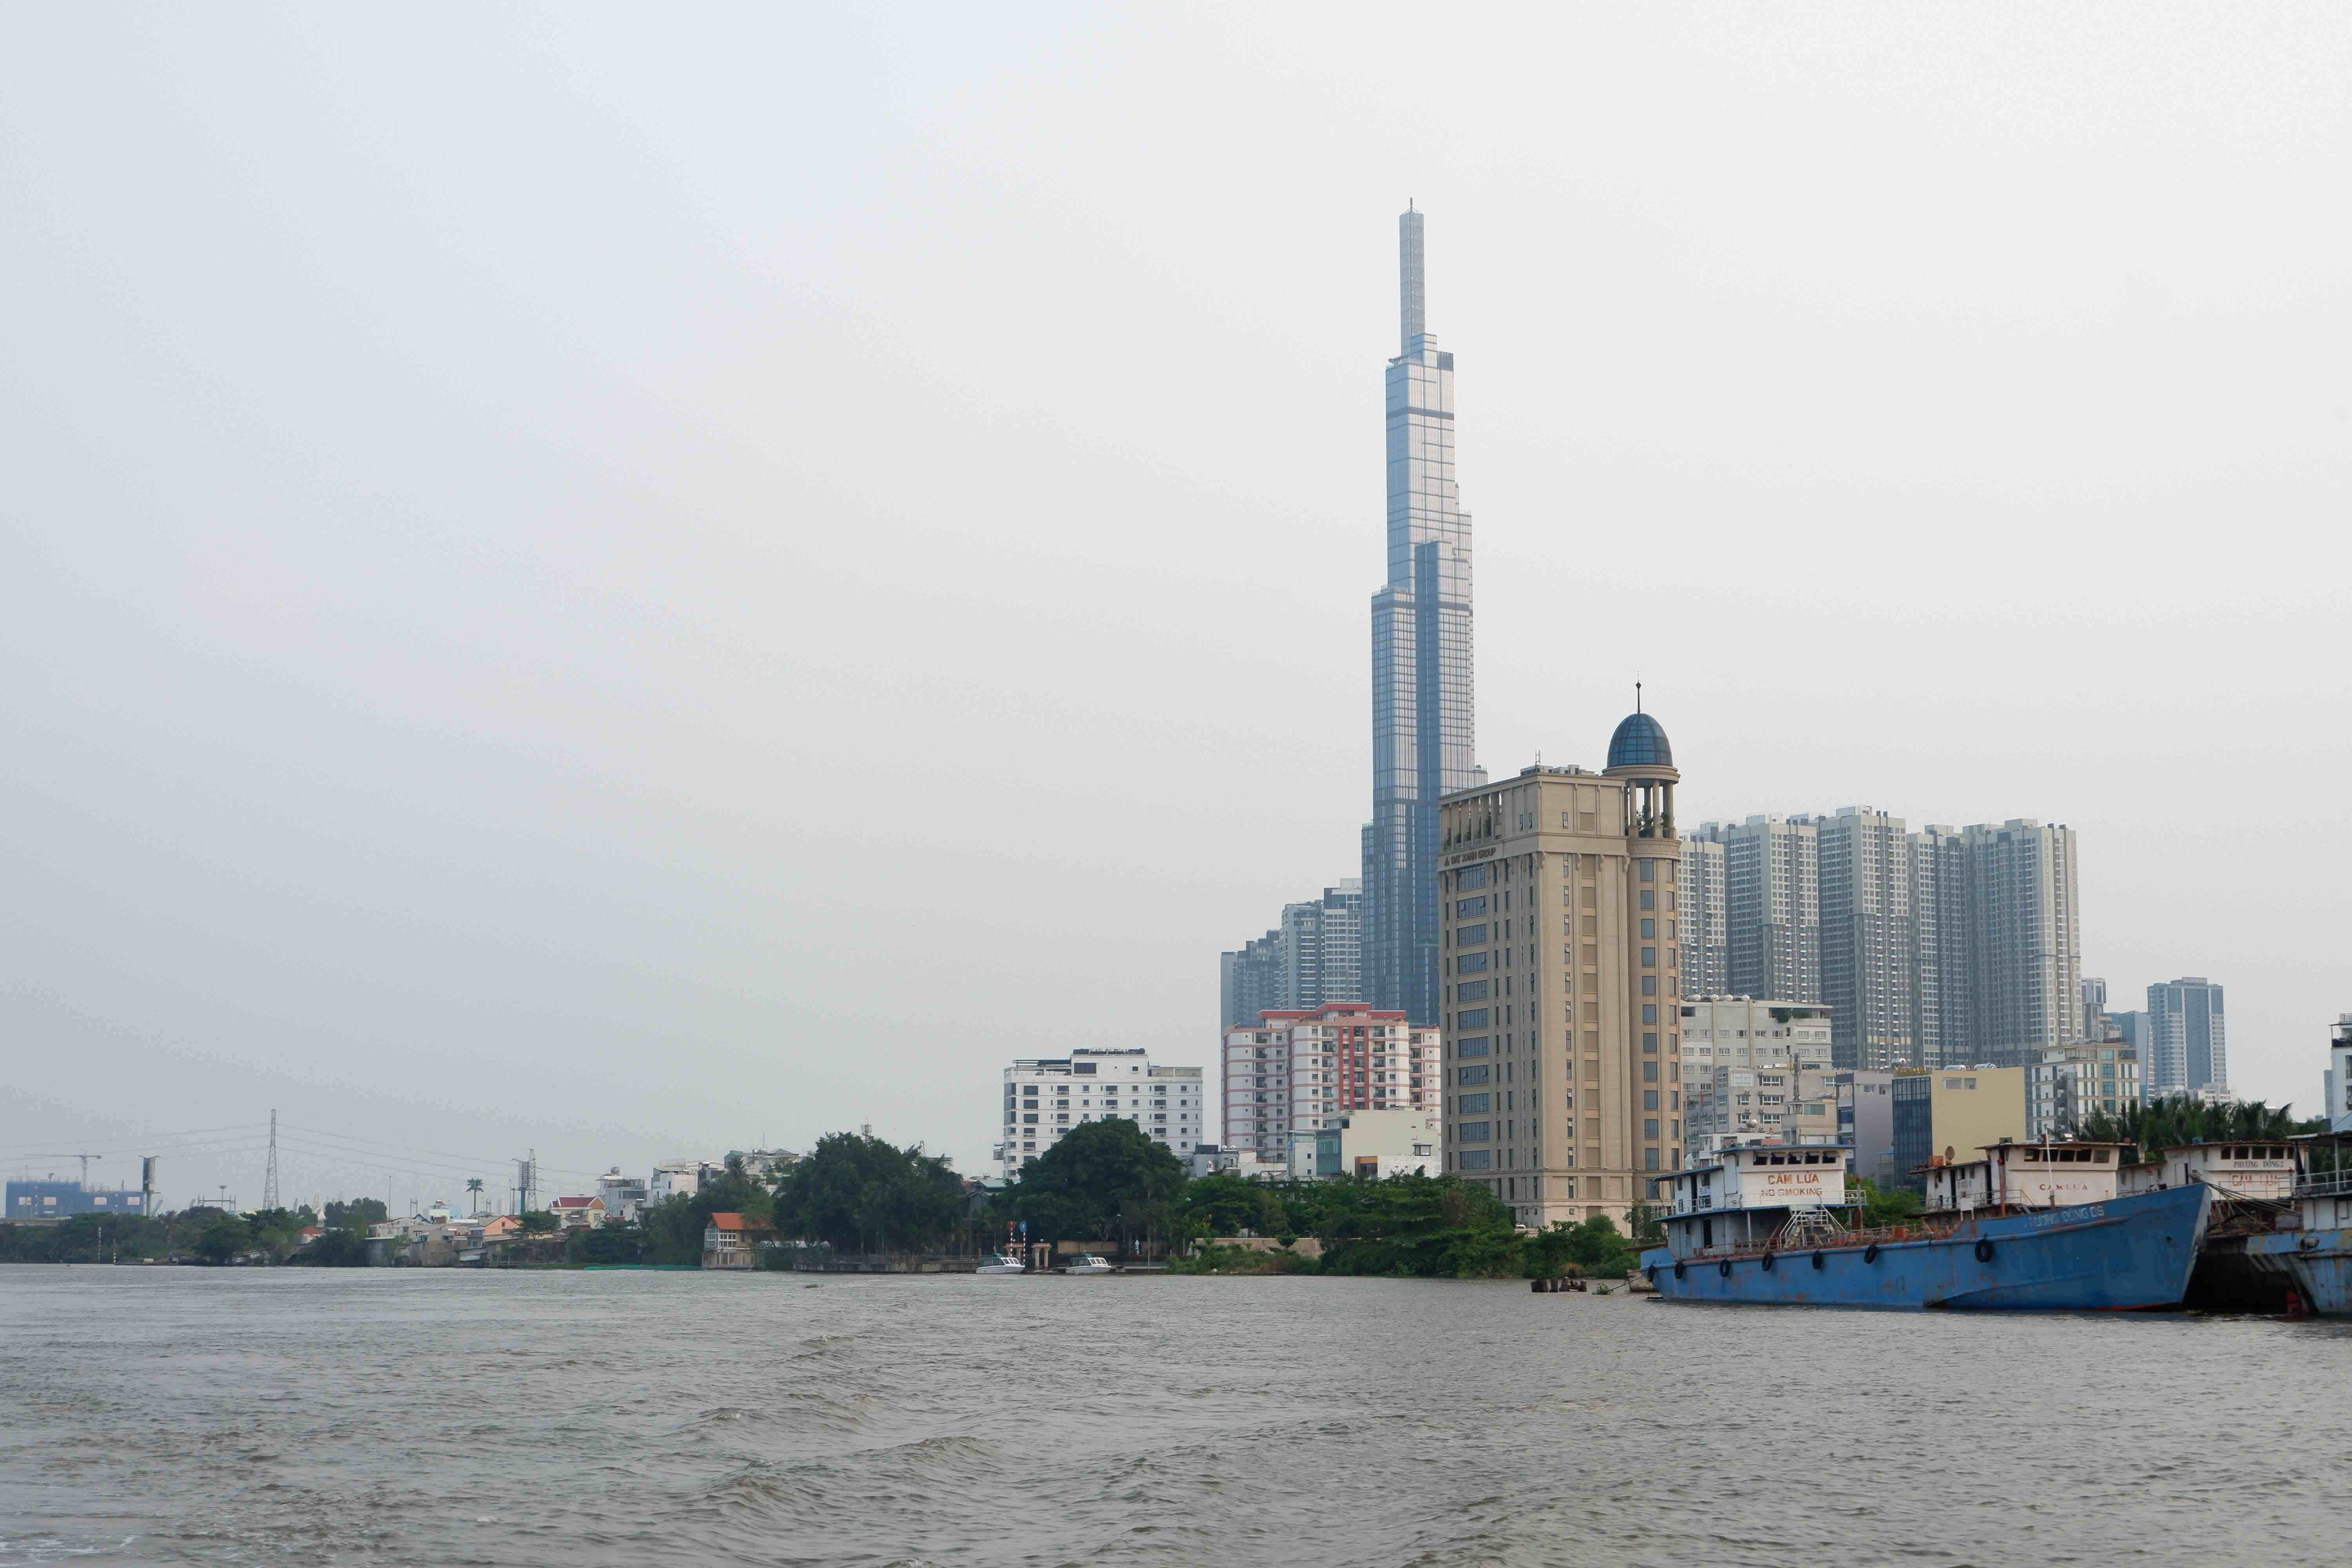 The complete scenery of the Landmark 81 skyscraper and its surrounding from waterbus. Photo: Linh To / Tuoi Tre